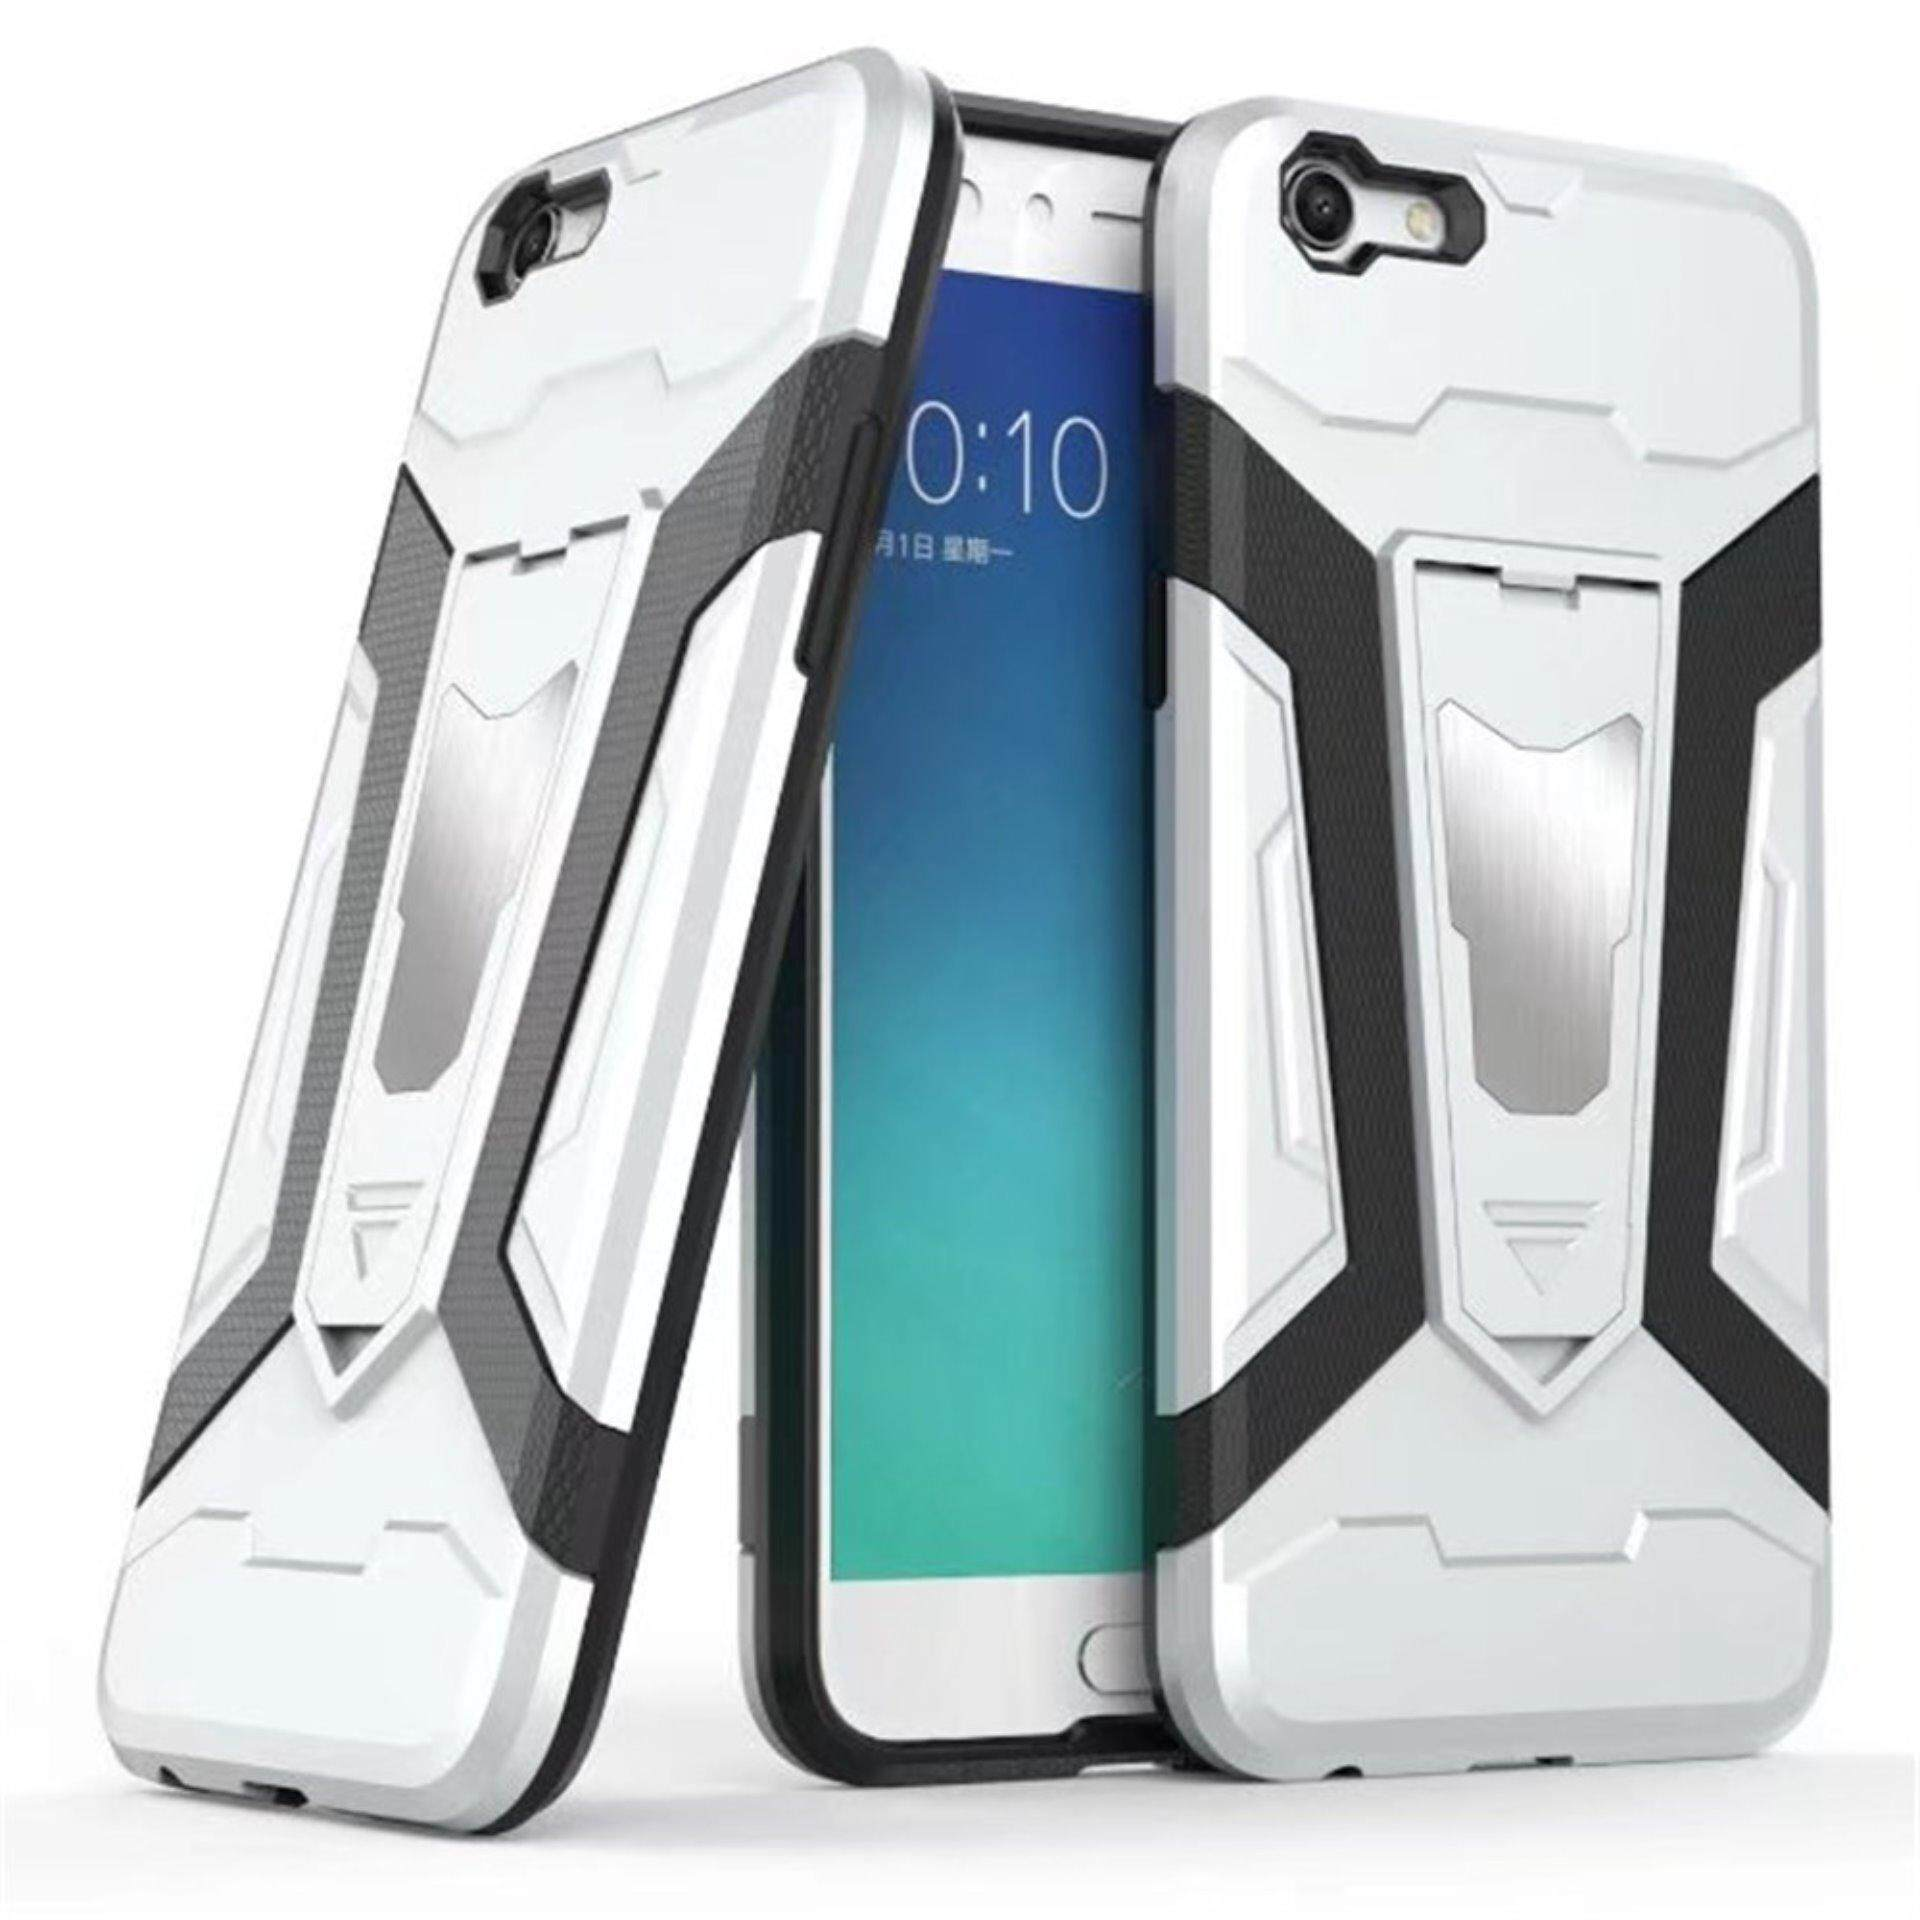 Cek Harga Iron Hard Man Armor Dual Phone Back Cover Case With Oppo F1s A59 3 In 1 Plated Rubber Coating Gold A77 Tactical Grip Kickstand Shockproof Bumper Shell Full Body